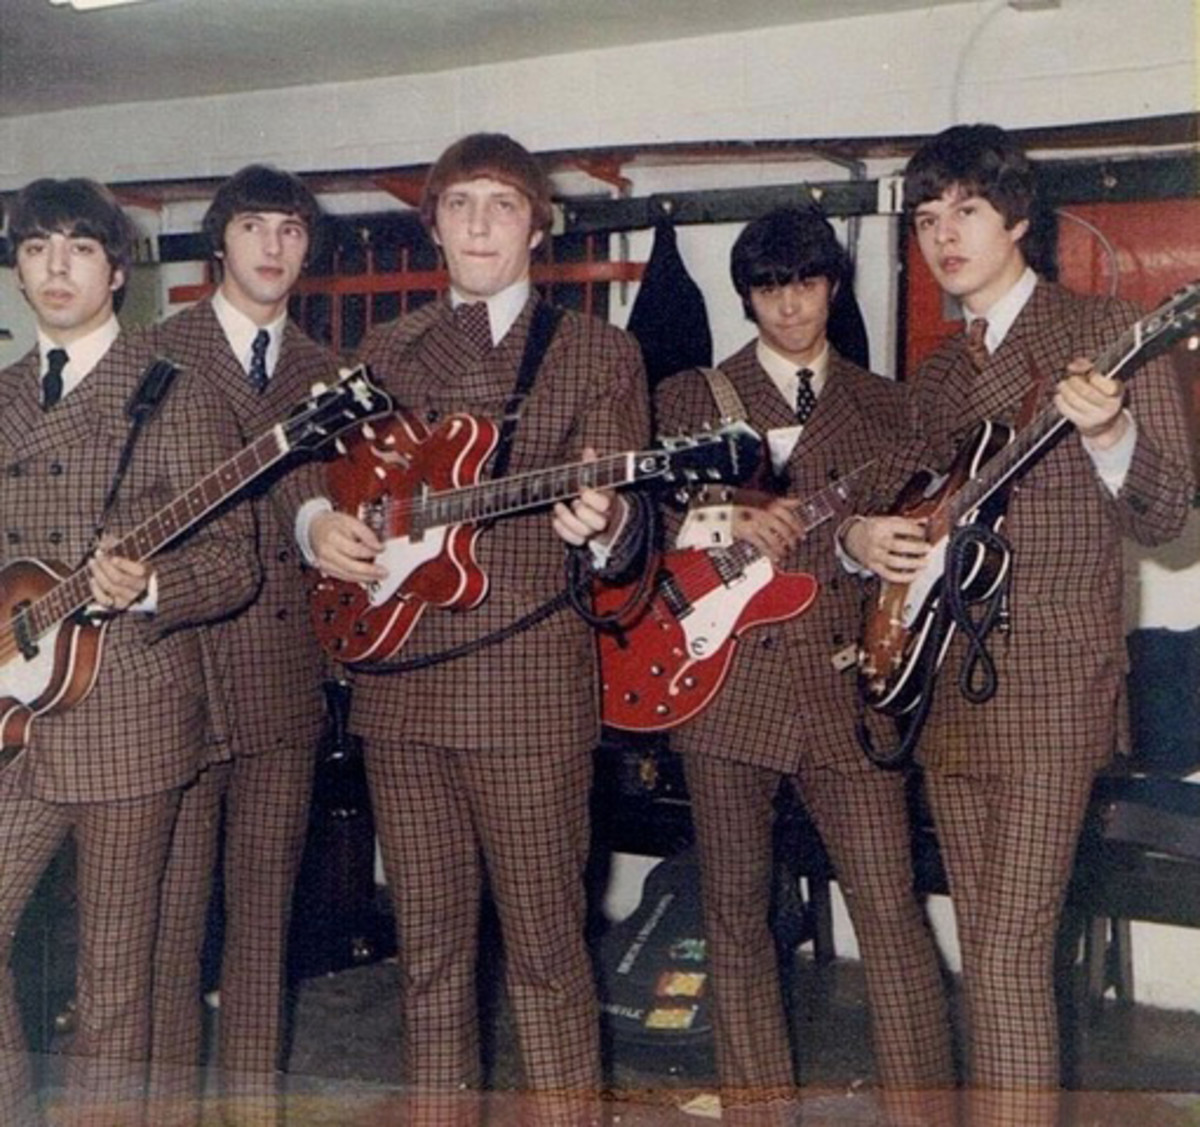 The Buckinghams in 1967 (L-R): Nick Fortuna, John Poulos, Marty Grebb, Dennis Tufano and Carl Giammarese. Photo courtesy of The Buckinghams.